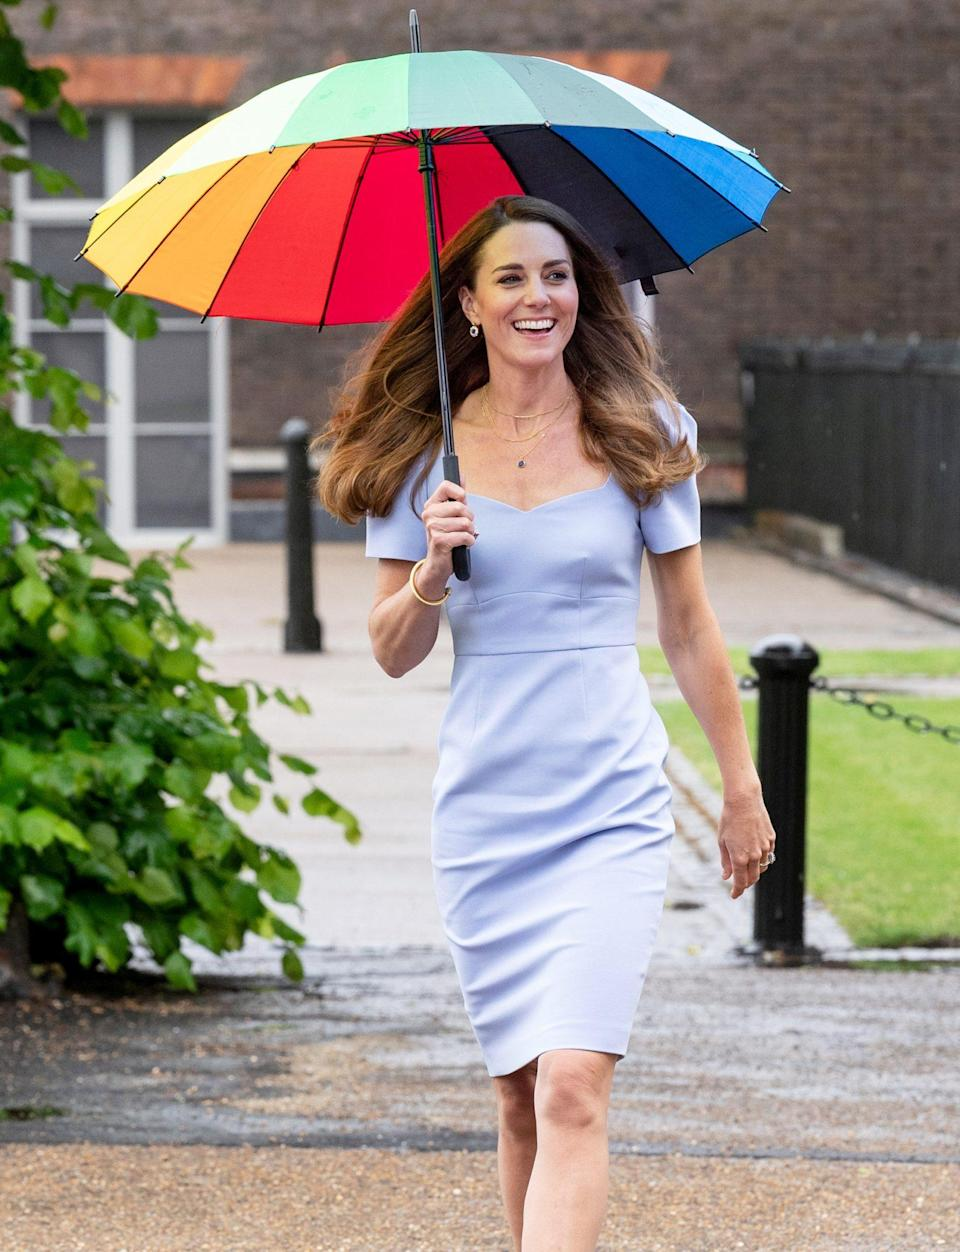 """<p>Rainbow in the storm! Kate Middleton brightens up a dreary June 18 with a colorful umbrella while reuniting in London with parents she has met during her decade-long journey culminating in the launch of the groundbreaking <a href=""""https://people.com/royals/kate-middleton-royal-foundation-centre-for-early-childhood-launch/"""" rel=""""nofollow noopener"""" target=""""_blank"""" data-ylk=""""slk:Royal Foundation Centre for Early Childhood"""" class=""""link rapid-noclick-resp"""">Royal Foundation Centre for Early Childhood</a>.</p>"""